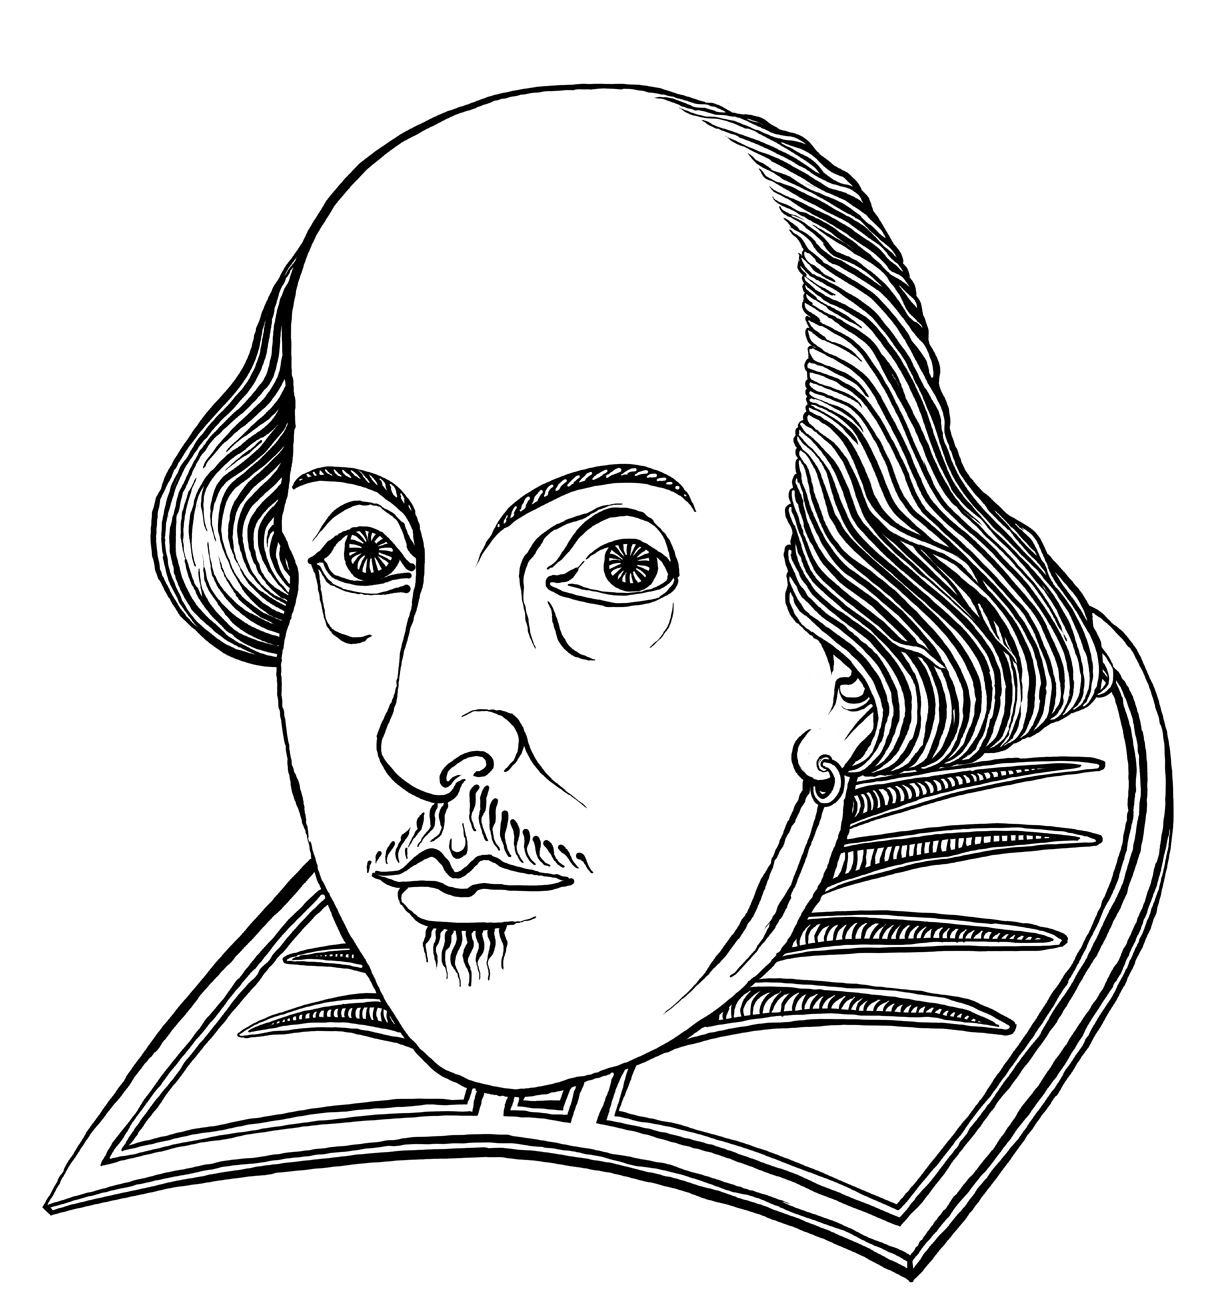 William Shakespeare Image Coloring Pages Drawings Shakespeare